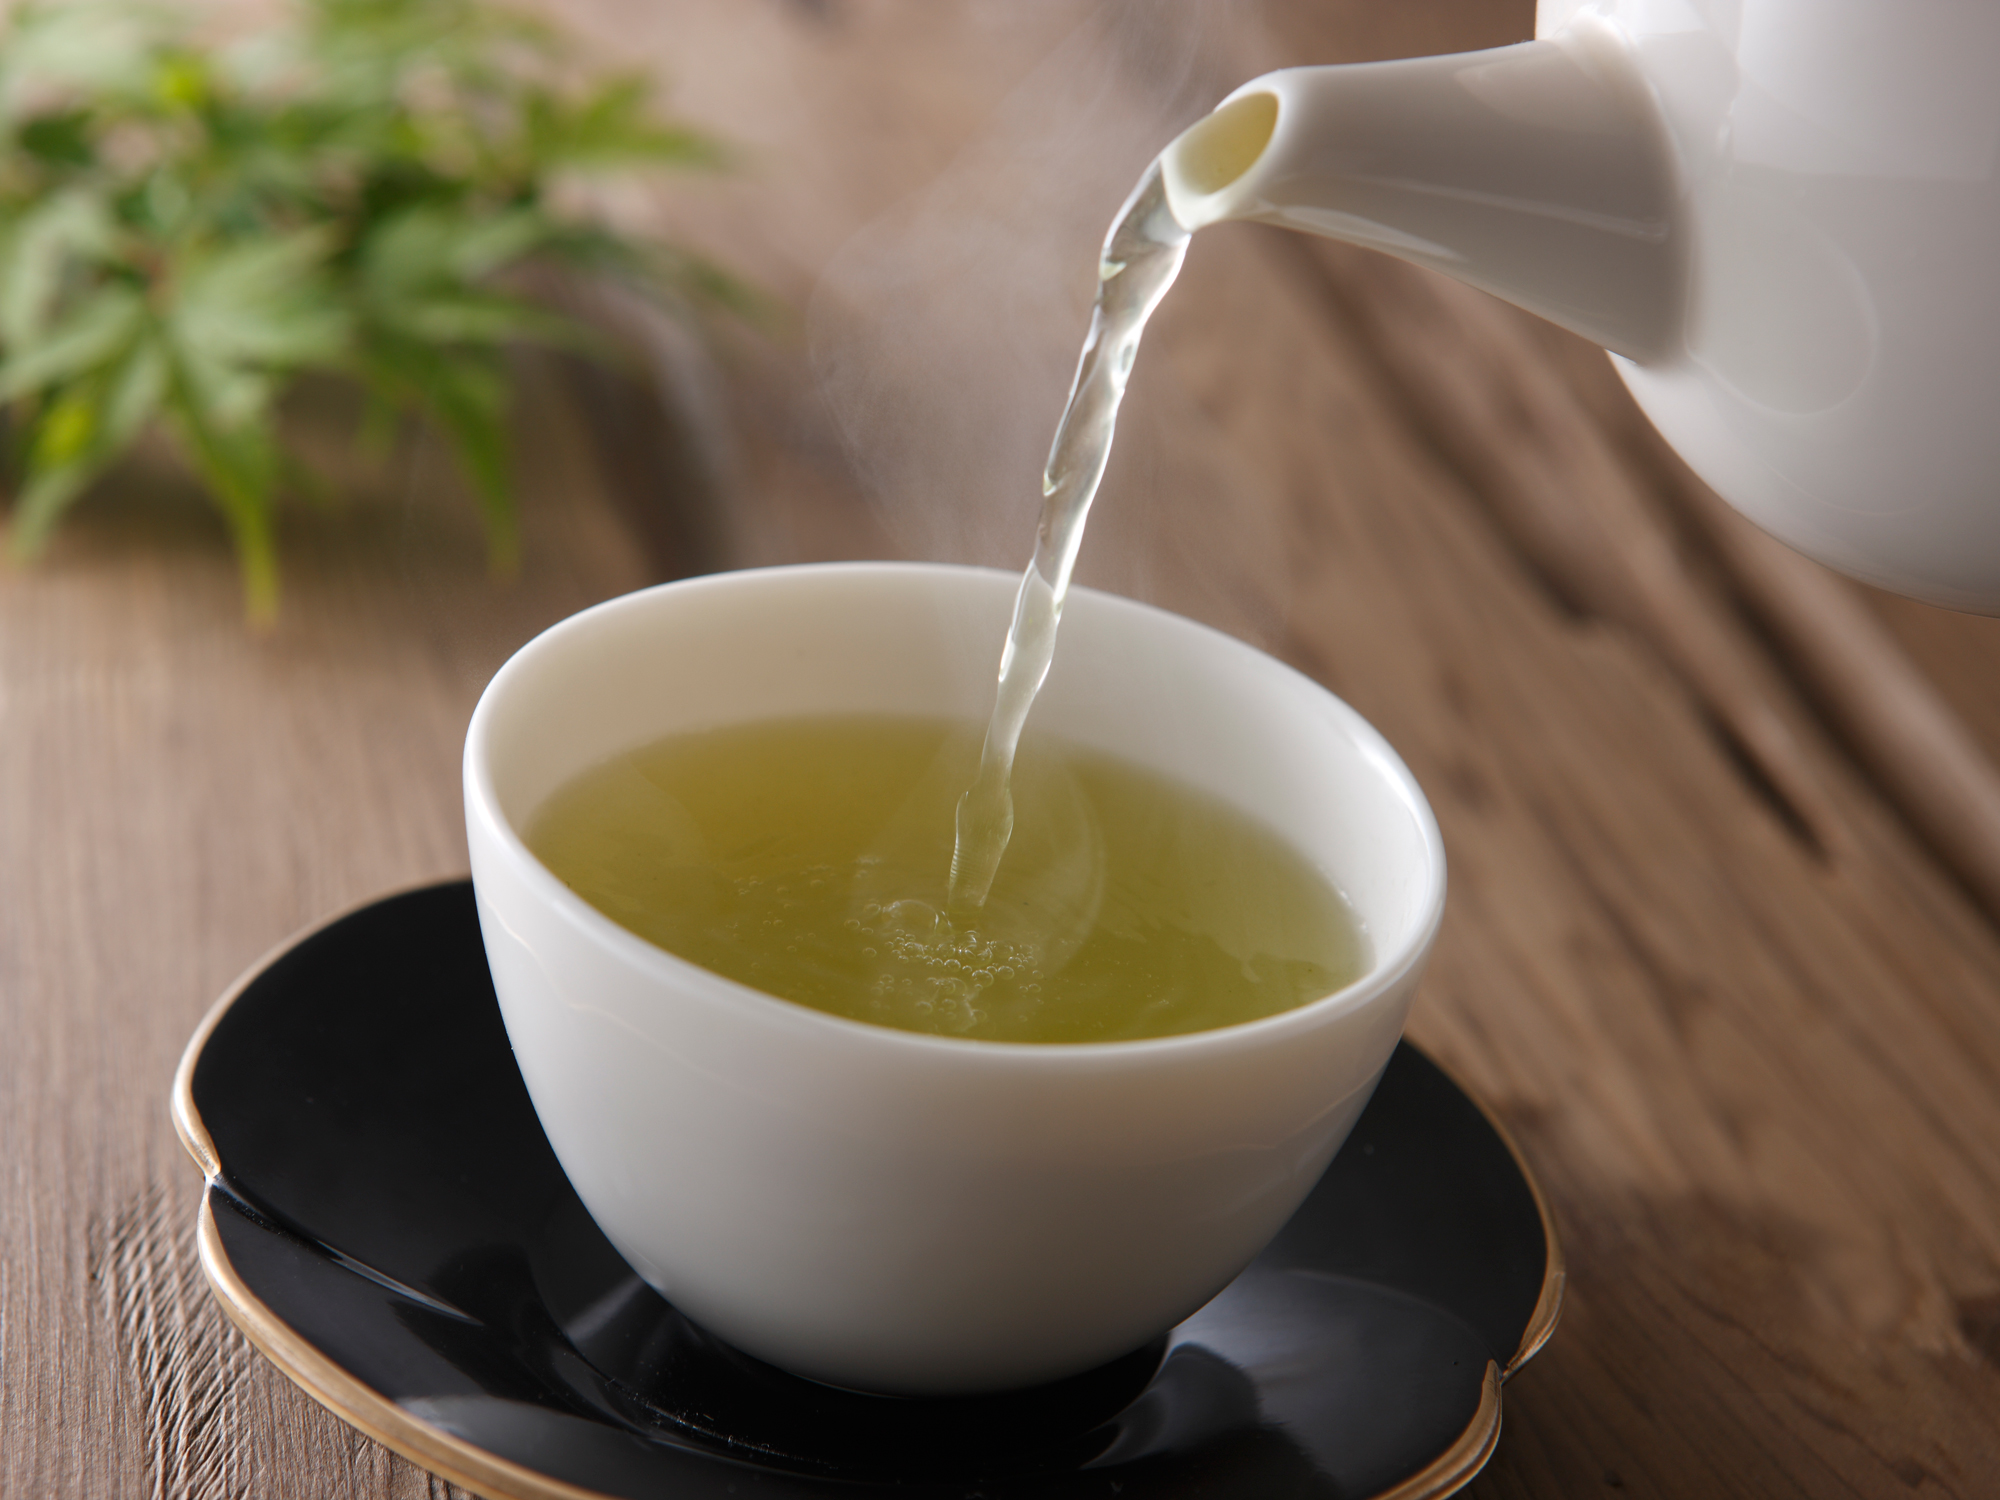 Green tea continues to amaze as potent cancer-killer